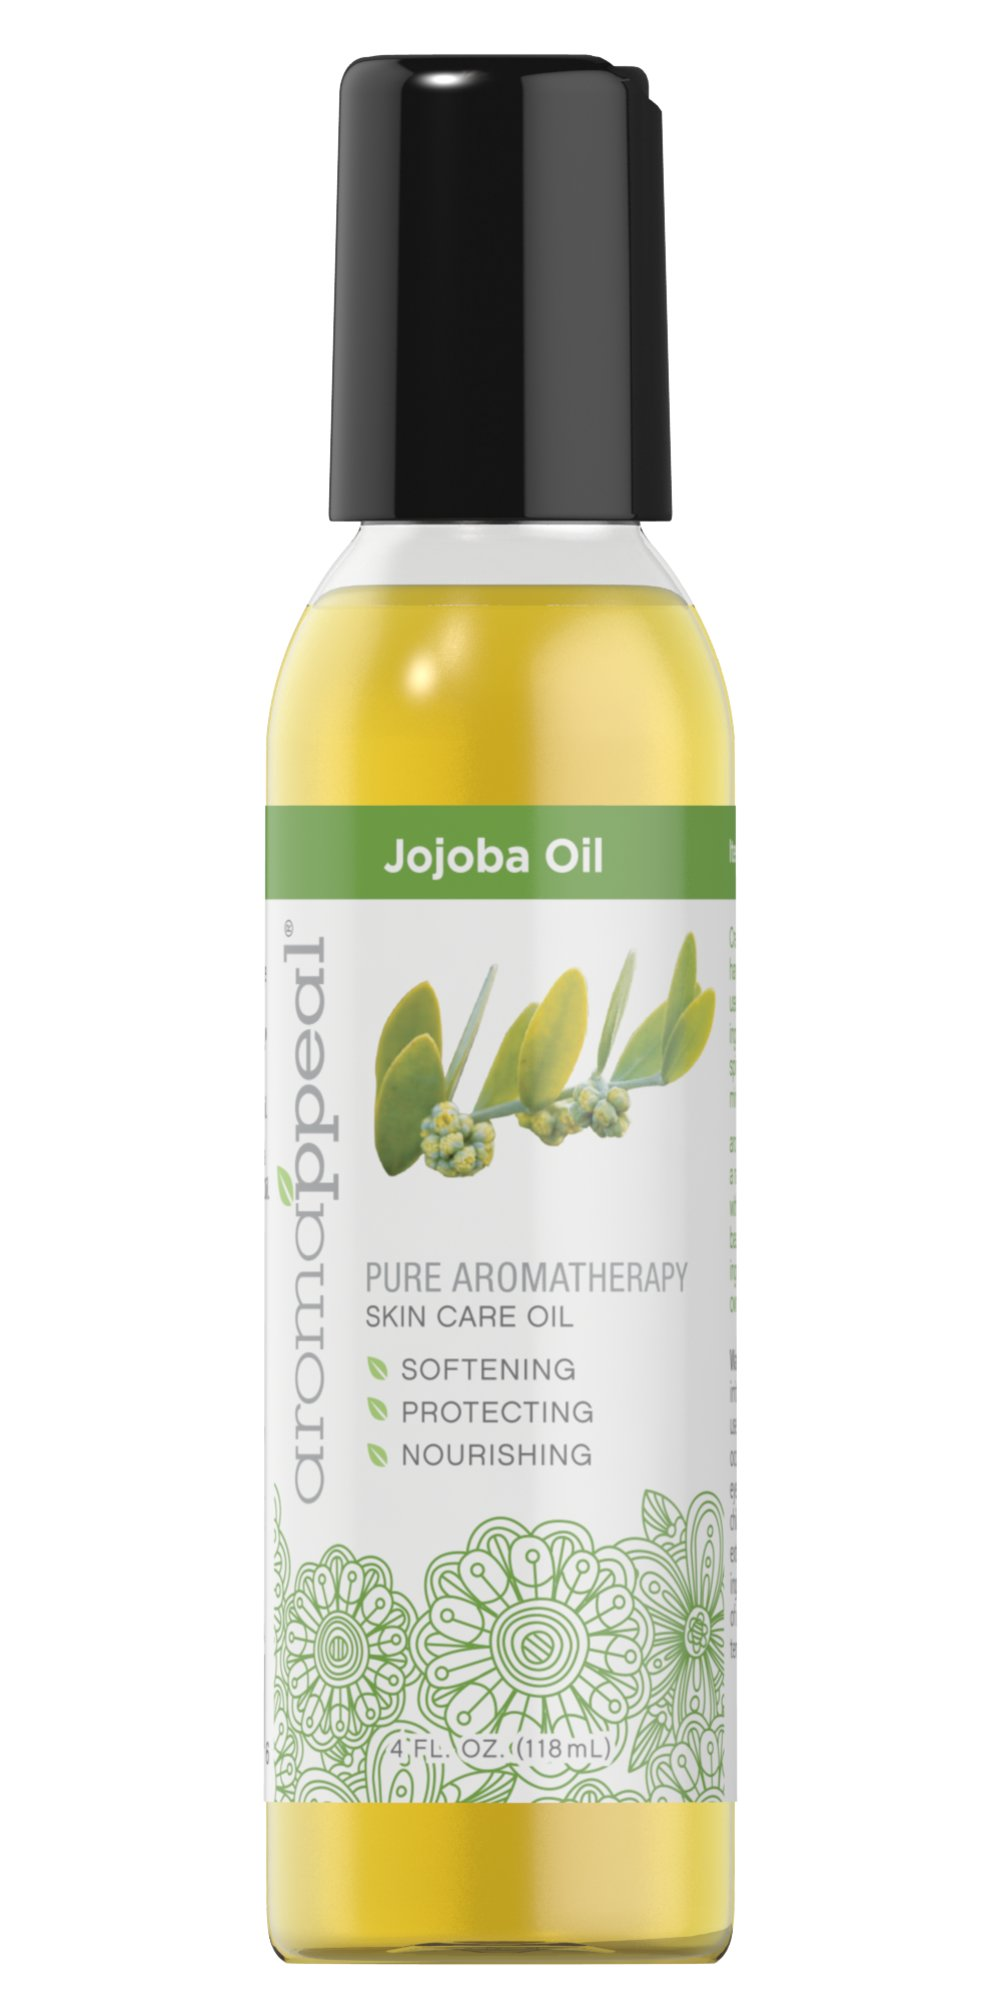 Jojoba Oil <p>Created to bring you harmony, Aromappeal™ uses the most balanced ingredients to lift your spirits and soothe your mind.</p><p>Aromappeal™ Jojoba Oil is a natural vegetable oil with a neutral aroma. This base makes an ideal ingredient to create your own aroma recipe.</p> 4 oz Oil  $15.99